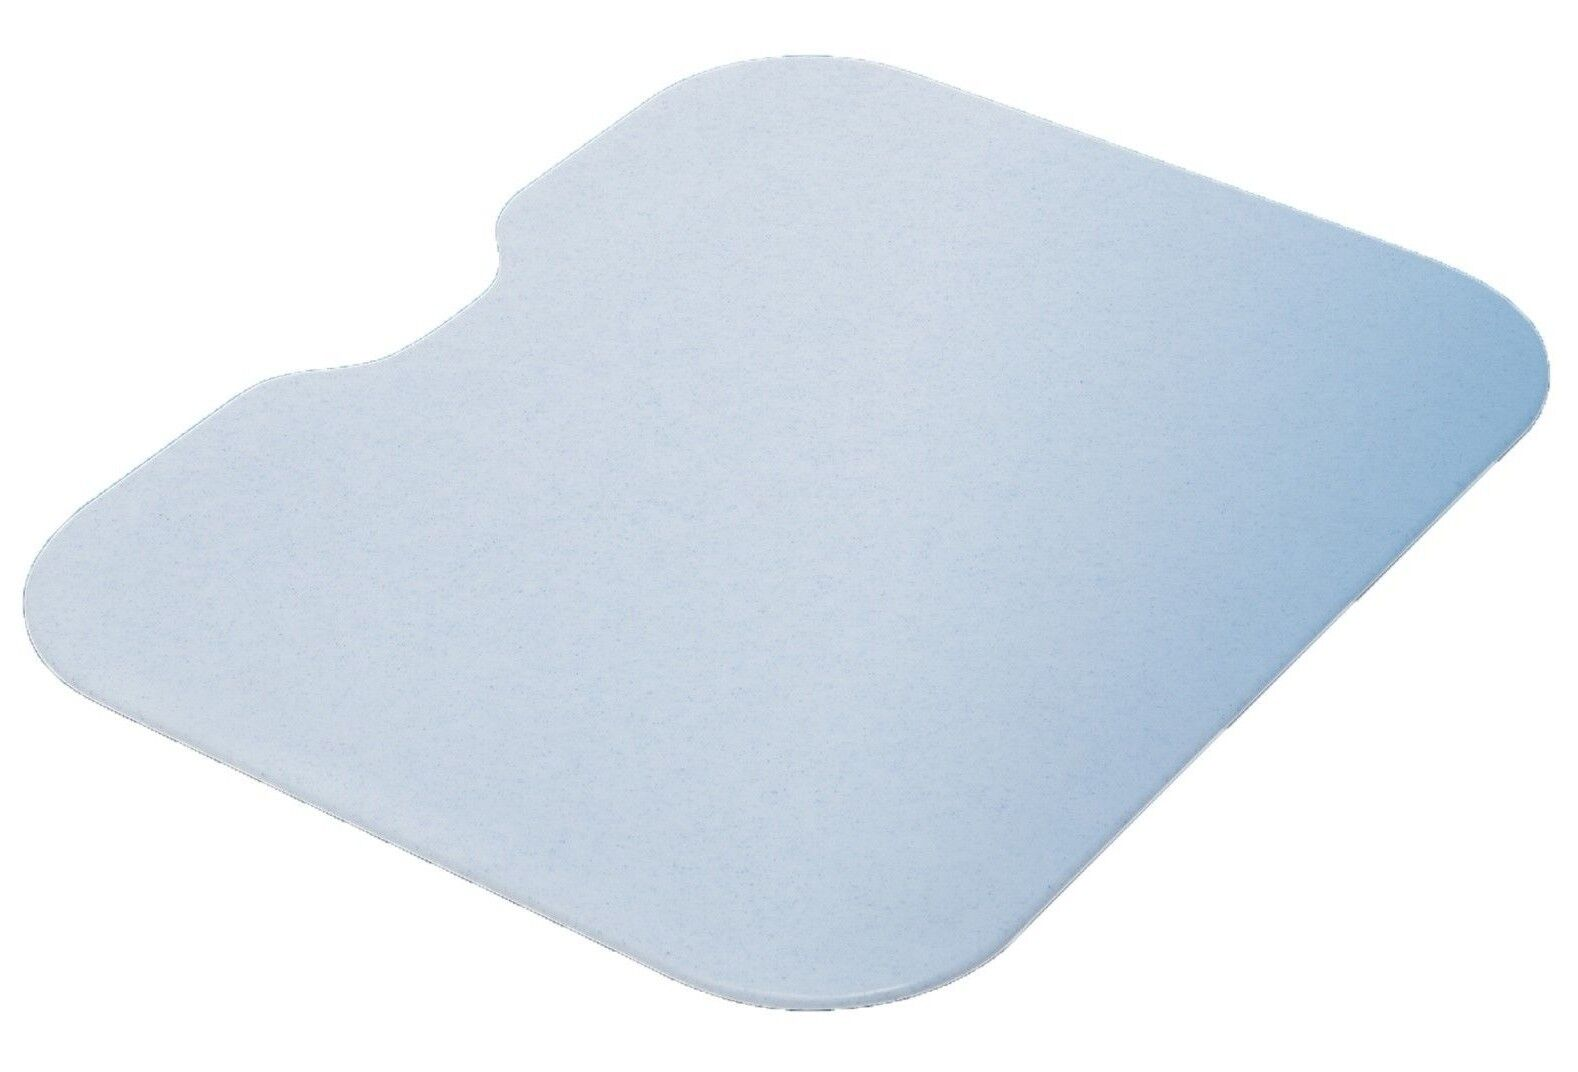 Blanc gris PLASTIC CUTTING BOARD 422x348x13mm Scratch Prougeected, Rigged Edge